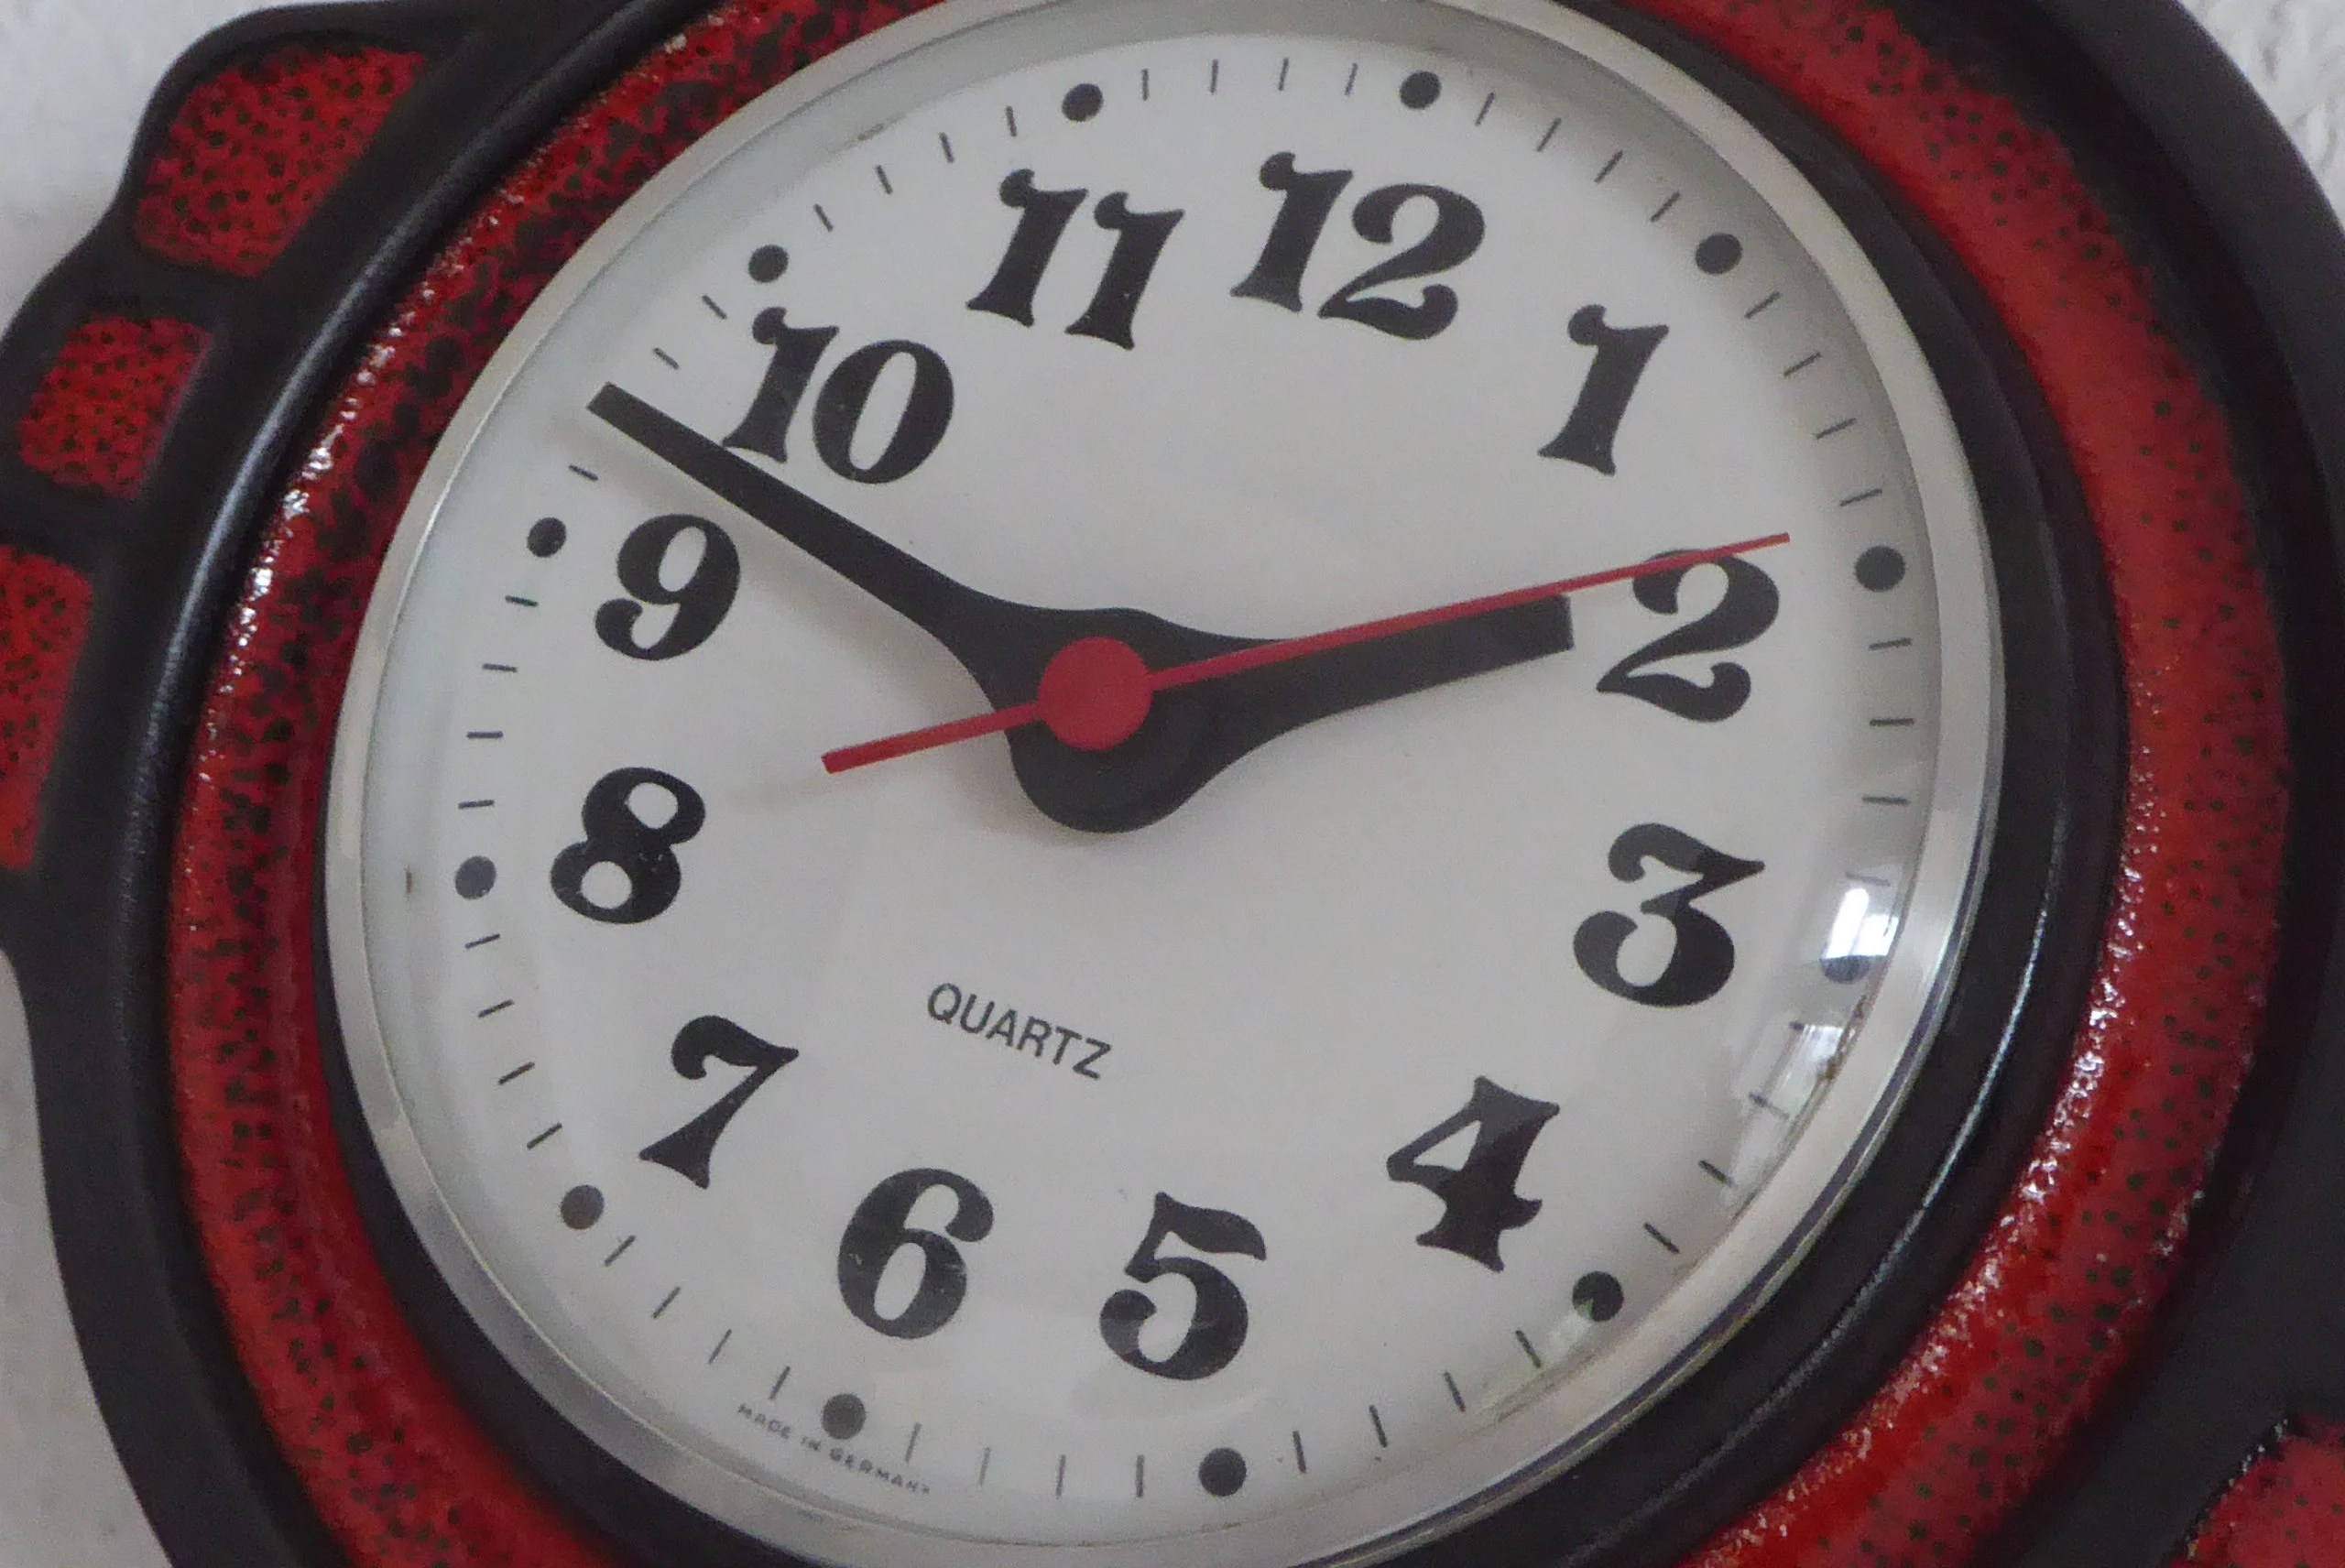 Wanduhr Vintage Look Quarz Wanduhr Wall Clock Red Black Vintage Uhr Battery Full Working Ceramic Clock 80s